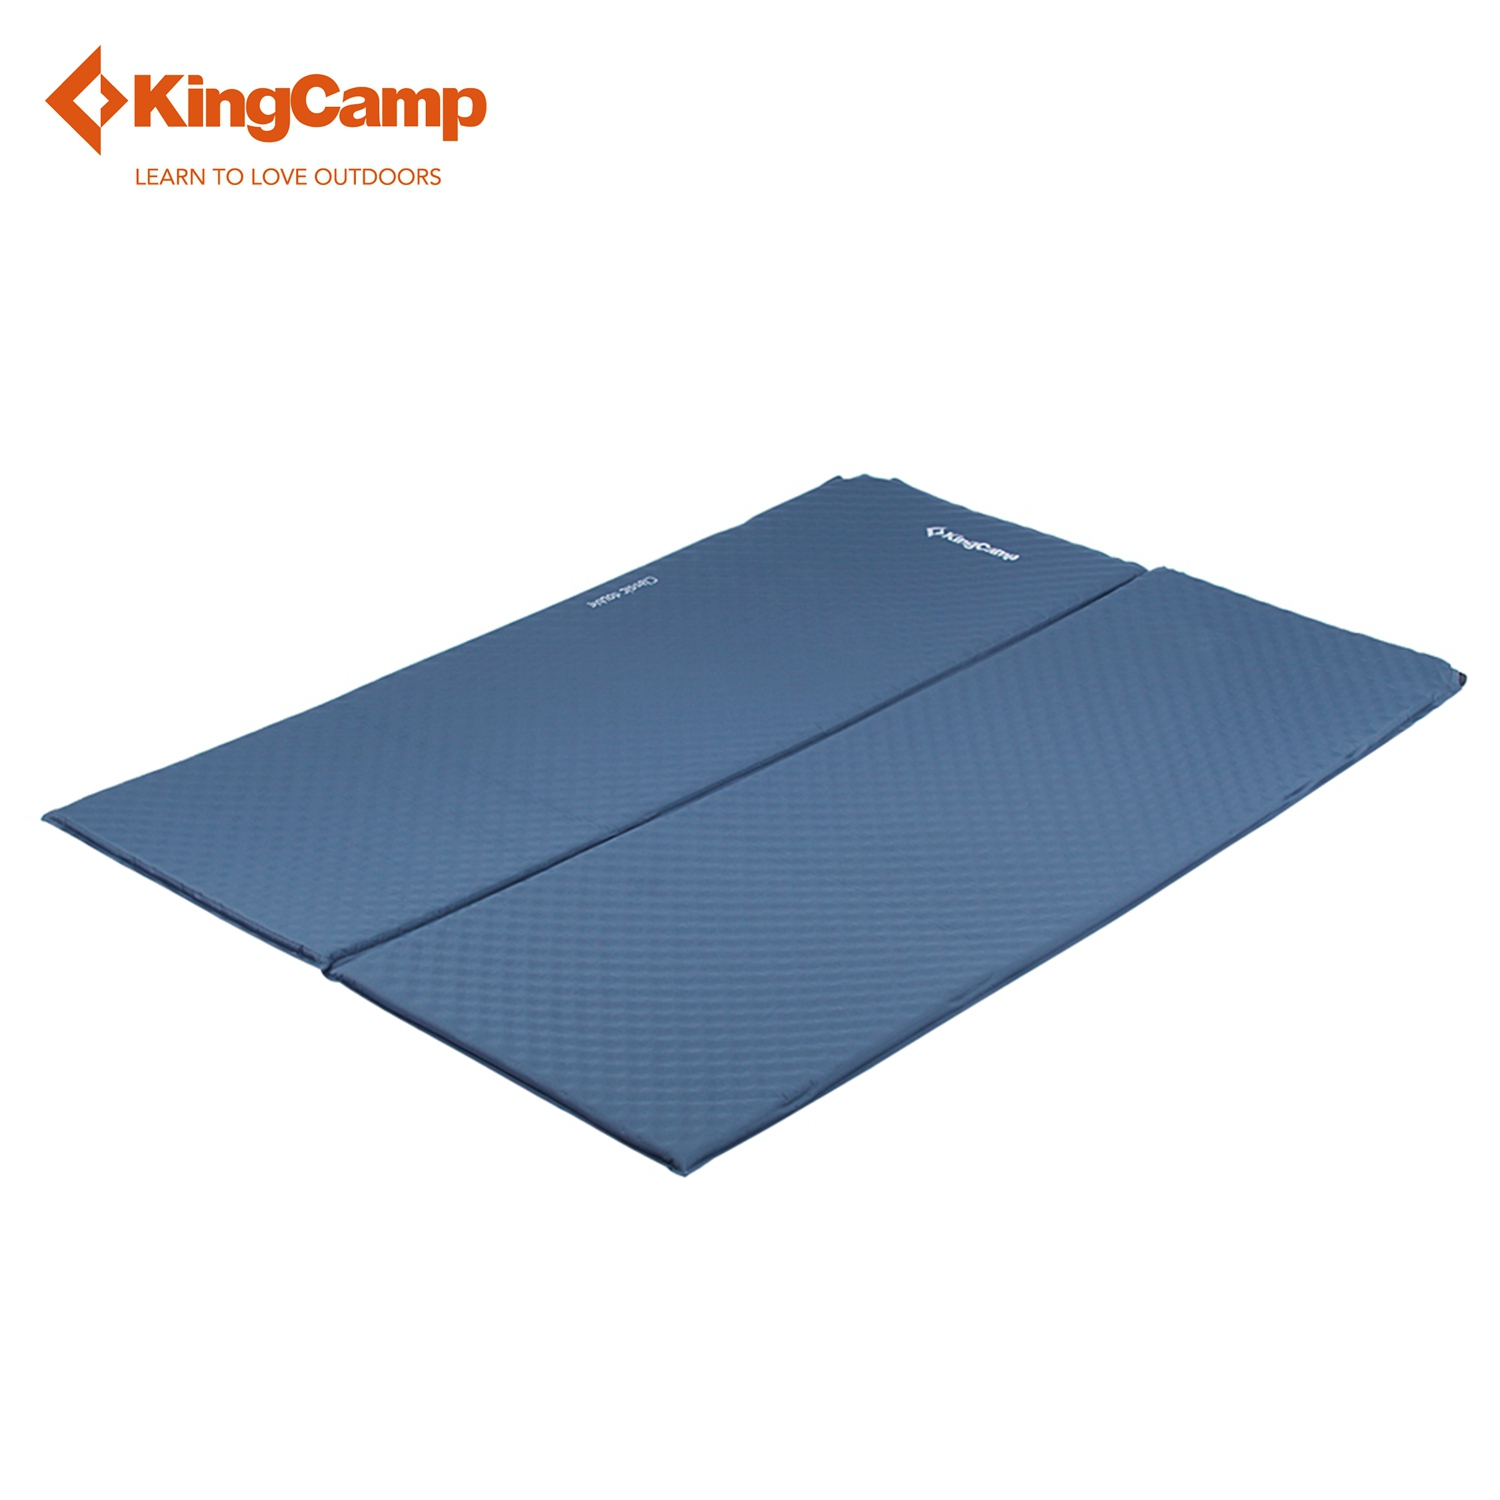 KingCamp Sleeping Pad Classic Double Self-Inflating Sleeping Mats for Hiking Outdoor Camping Mattress Pad for Traveling Trekking ноутбук qtech 116g 12 ultrabook windows 8 touch intel 8 750g hdd azerty qt116g